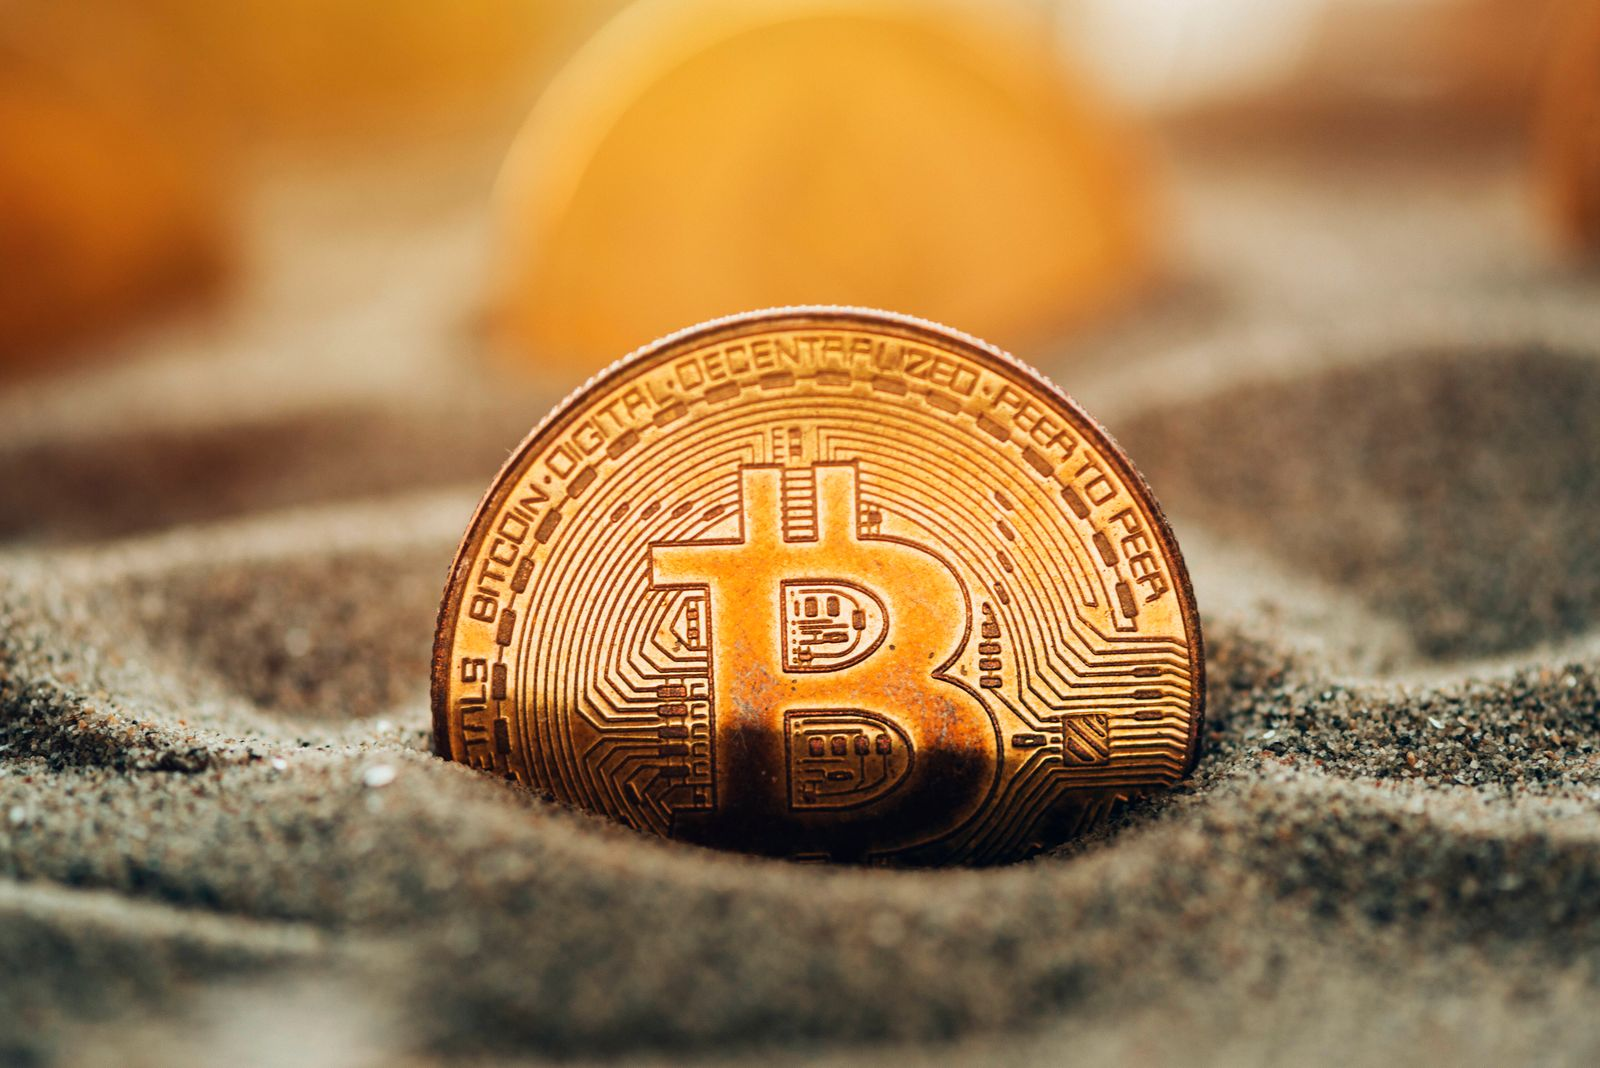 Cryptocurrency mining, conceptual image Bitcoin cryptocurrency coins buried in sand. Conceptual image for crypto mining